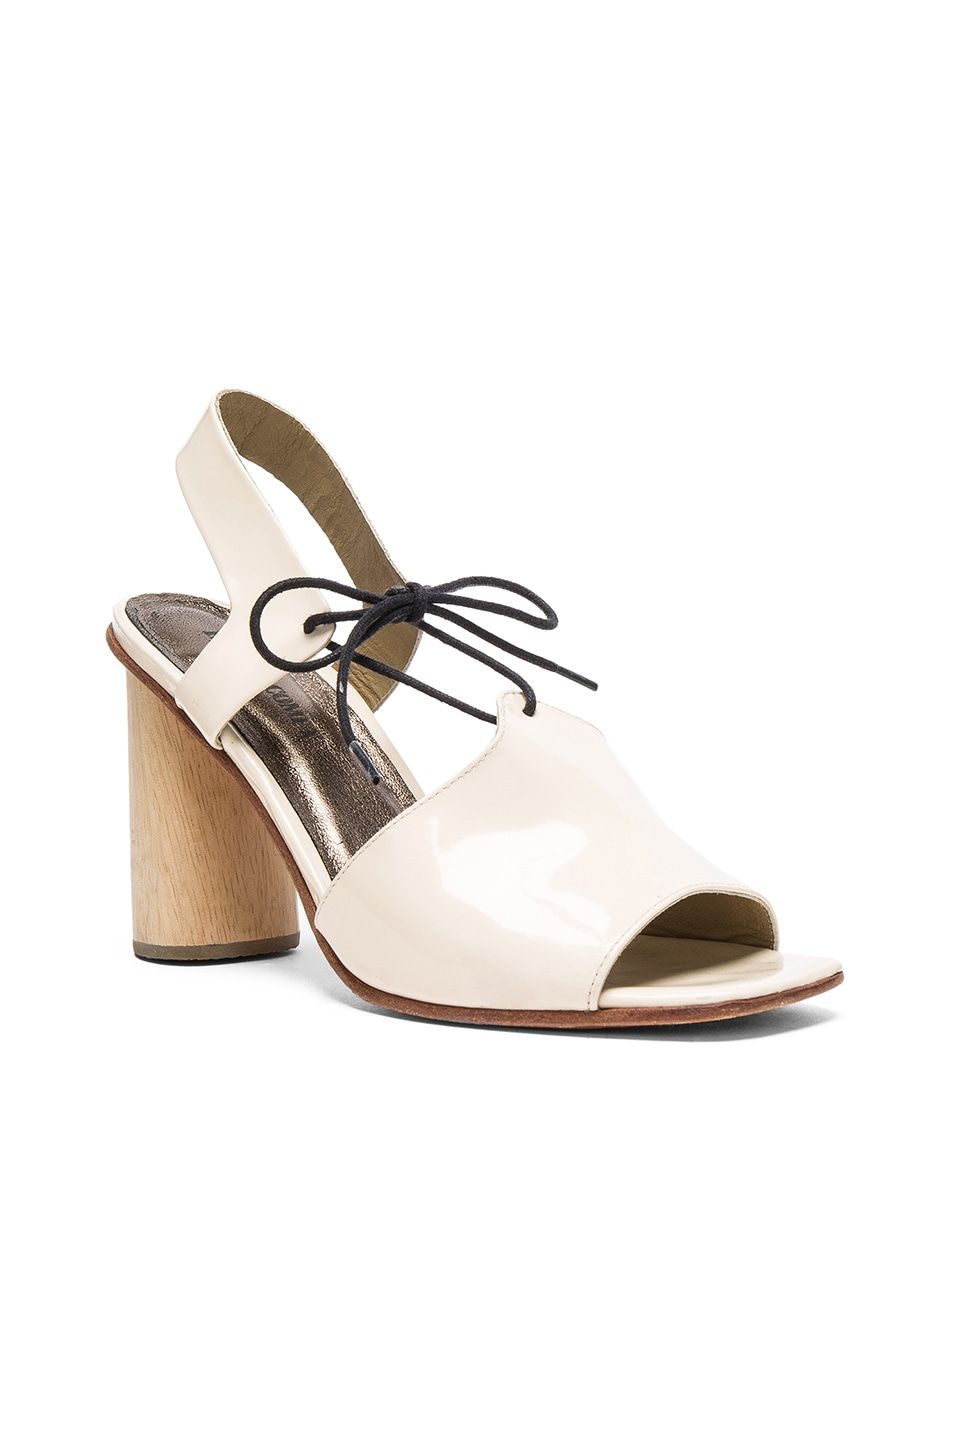 Image 2 of Rachel Comey Patent Leather Melrose Heels in Creamsicle Patent